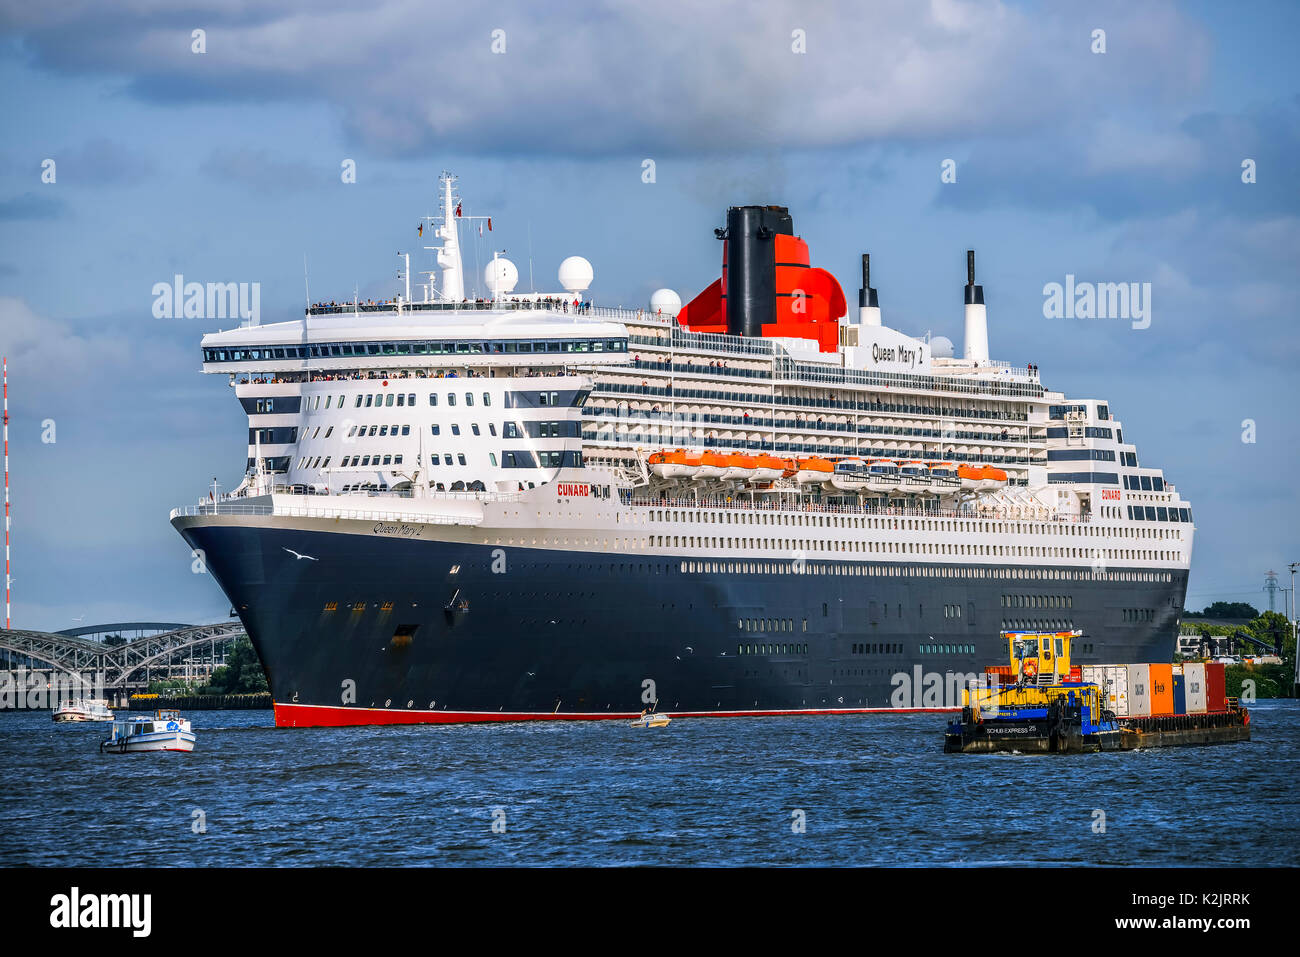 queen mary 2 ship stock photos queen mary 2 ship stock images alamy. Black Bedroom Furniture Sets. Home Design Ideas